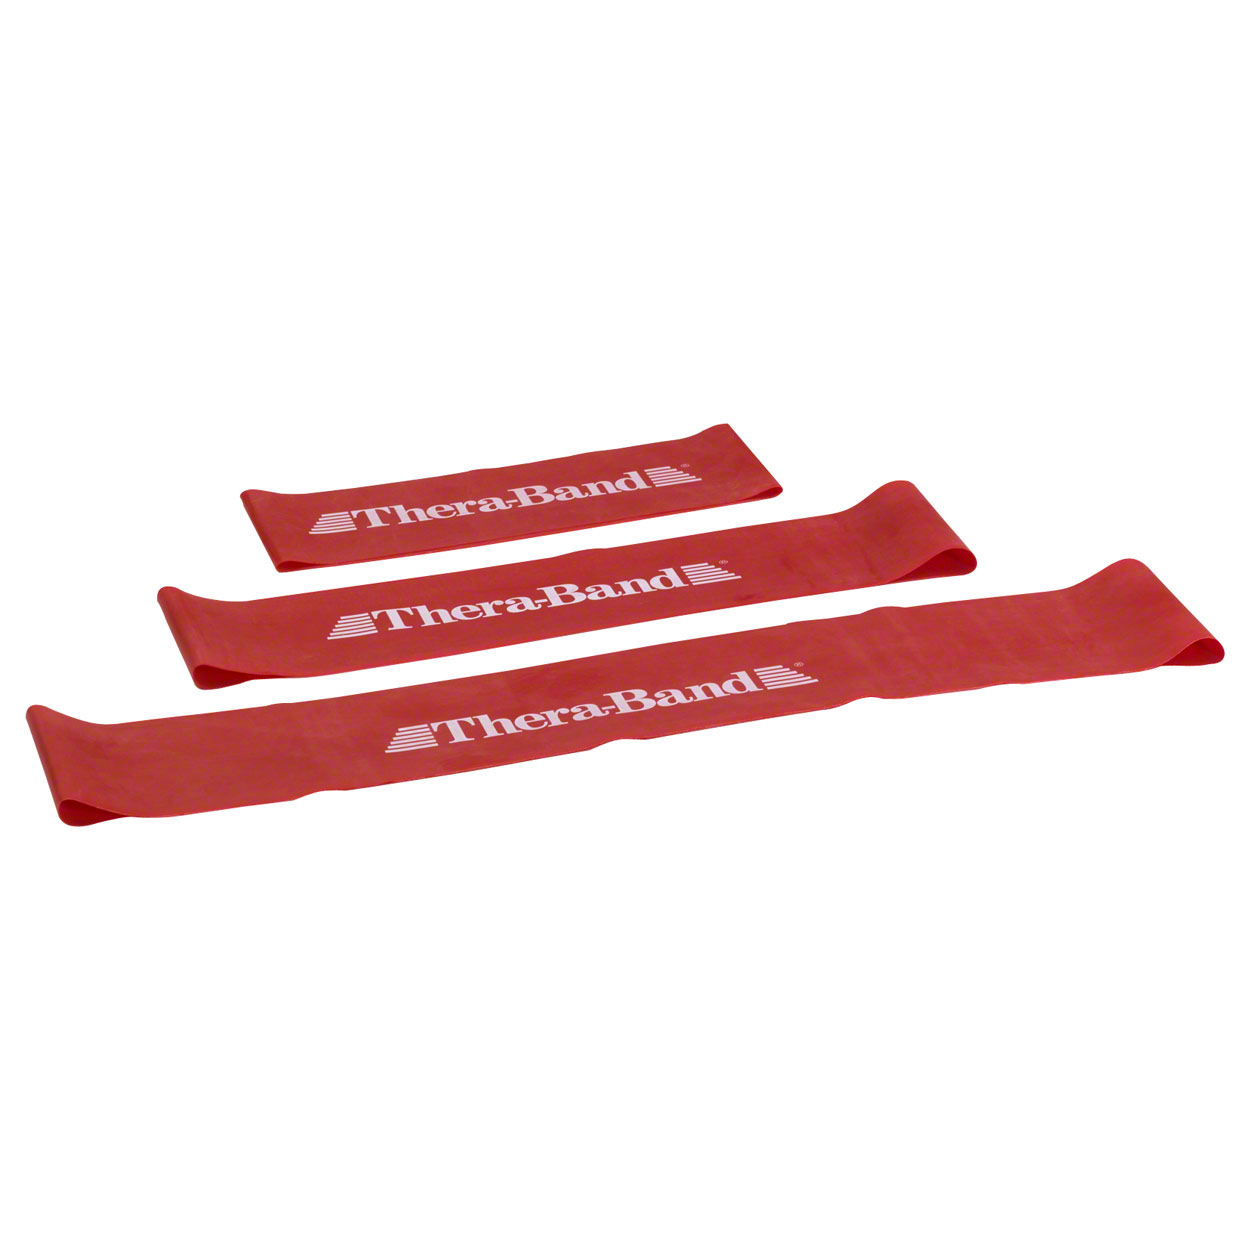 Kunden PH 2016: Thera-Band Loop, Ø 29 cm, 7,6x45,5 cm, mittel, rot